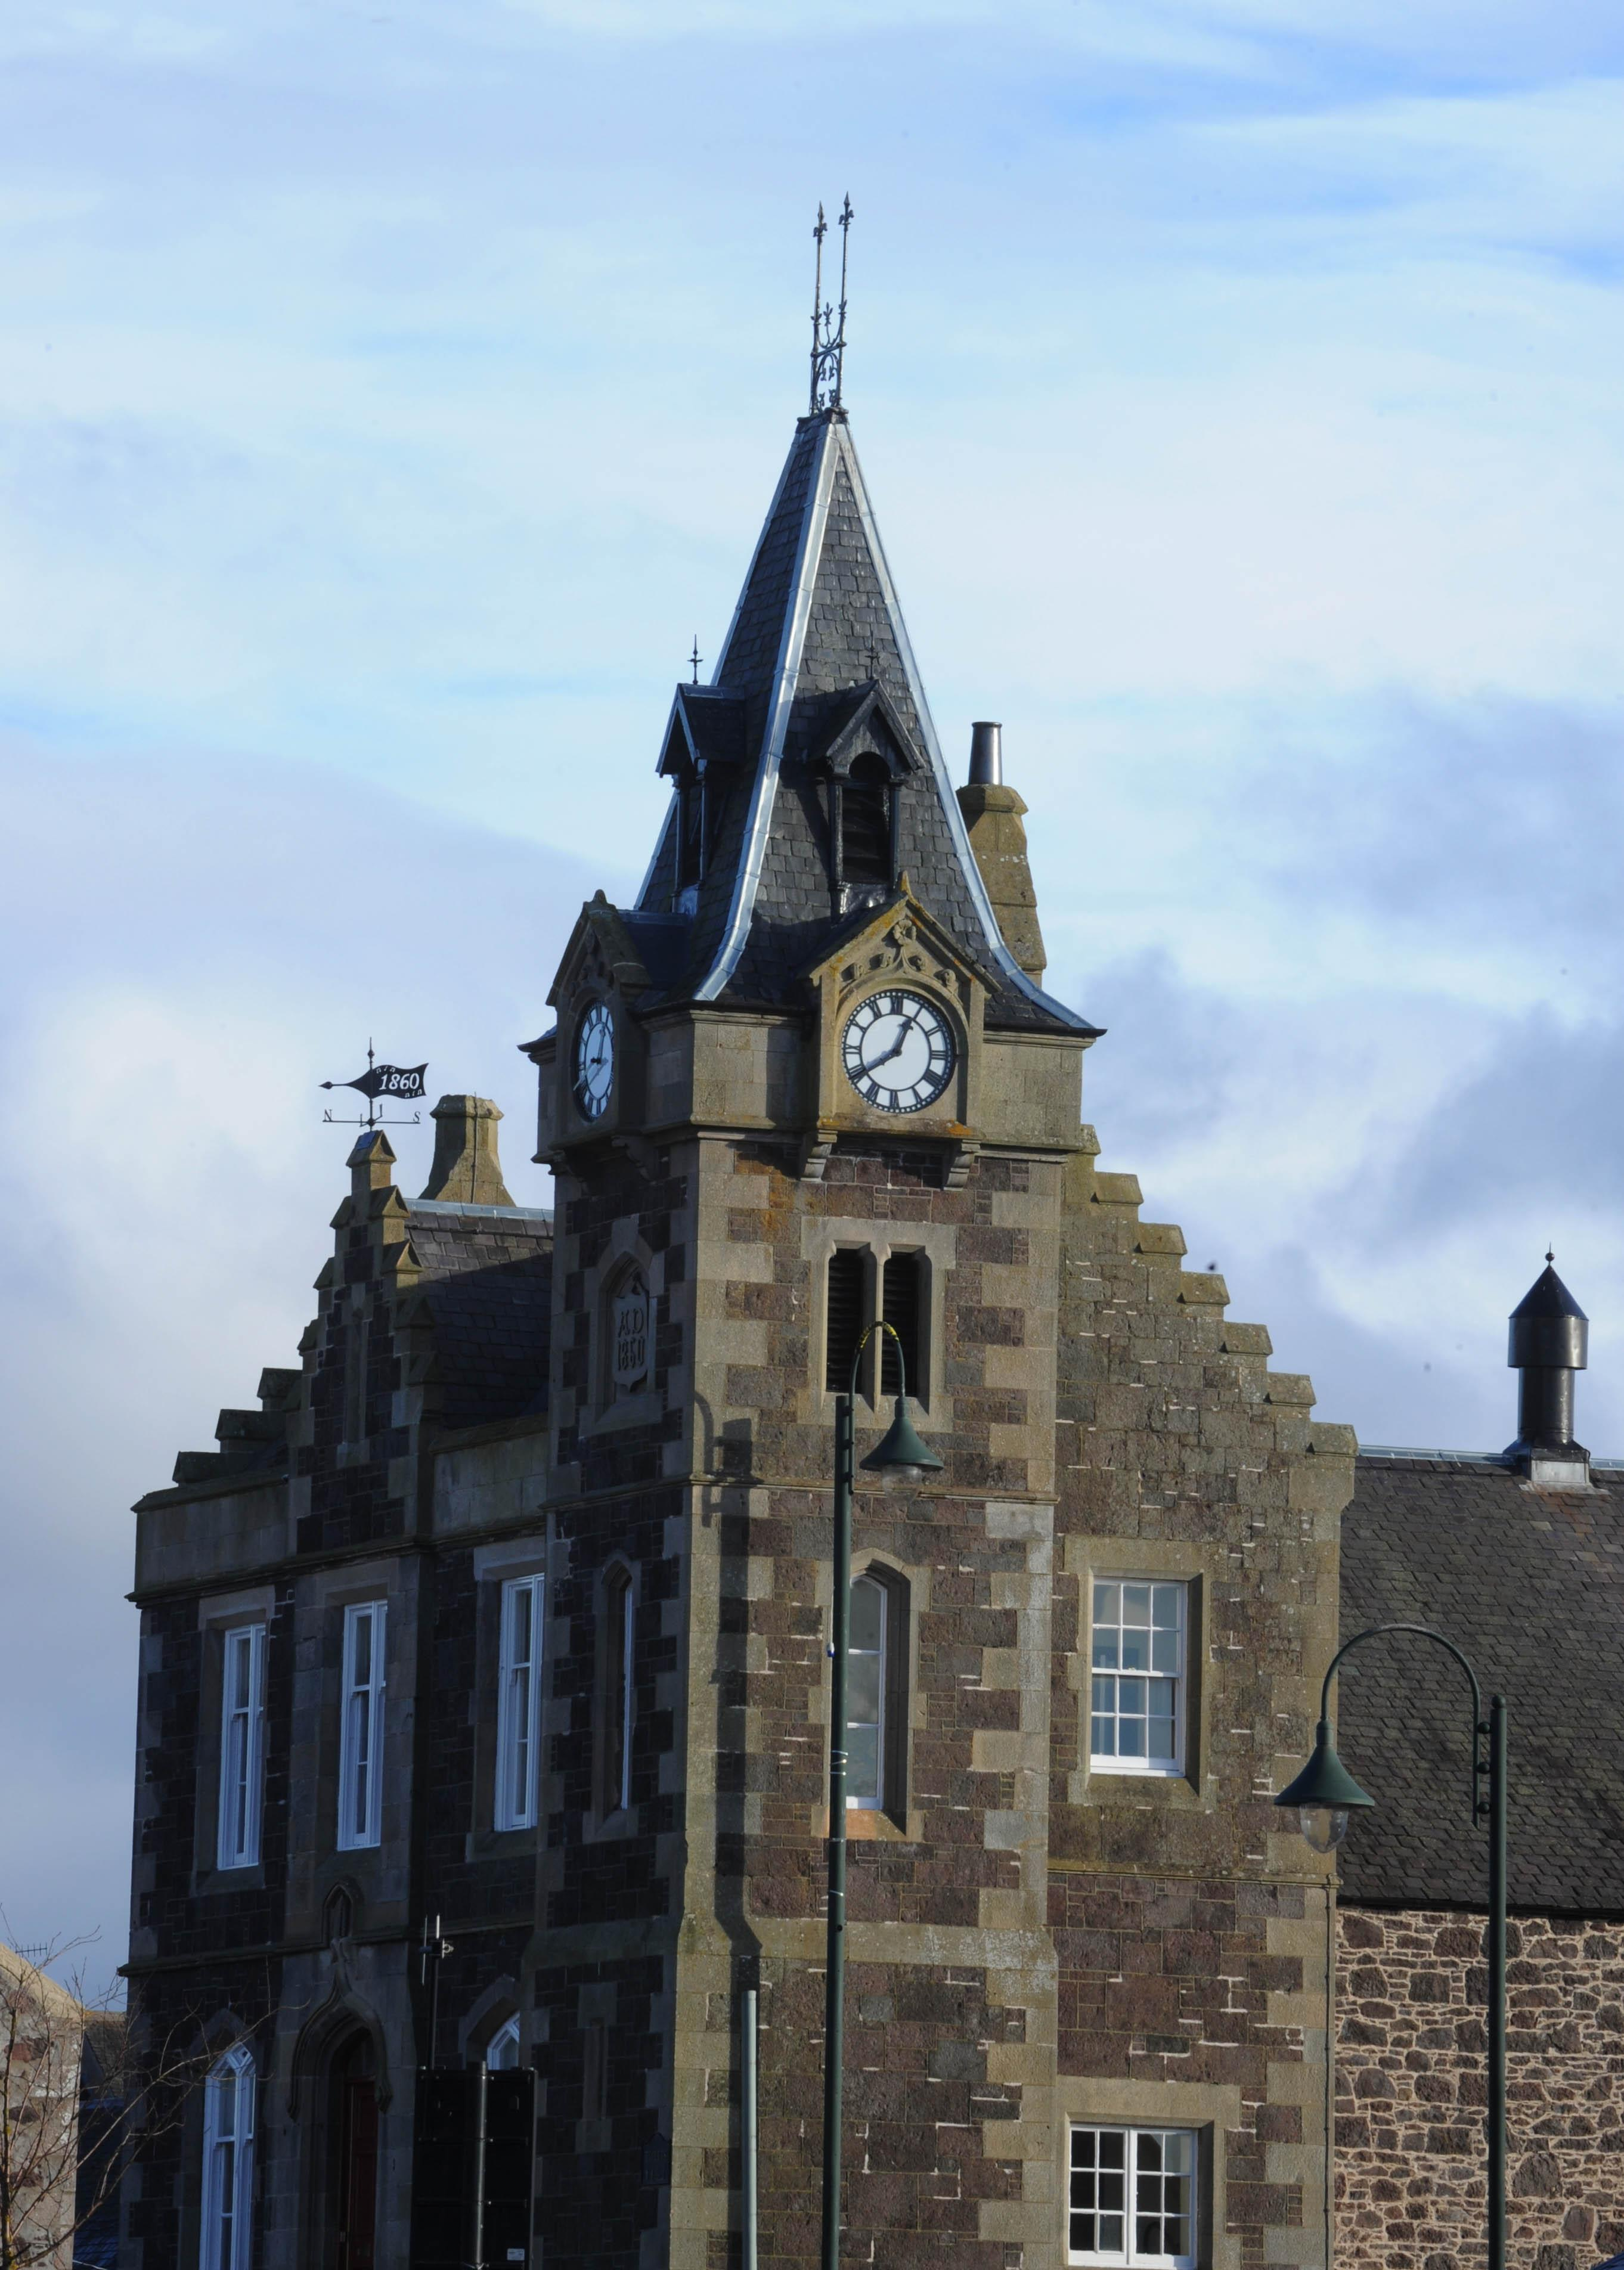 exterior view of Corn Exchange in Biggar